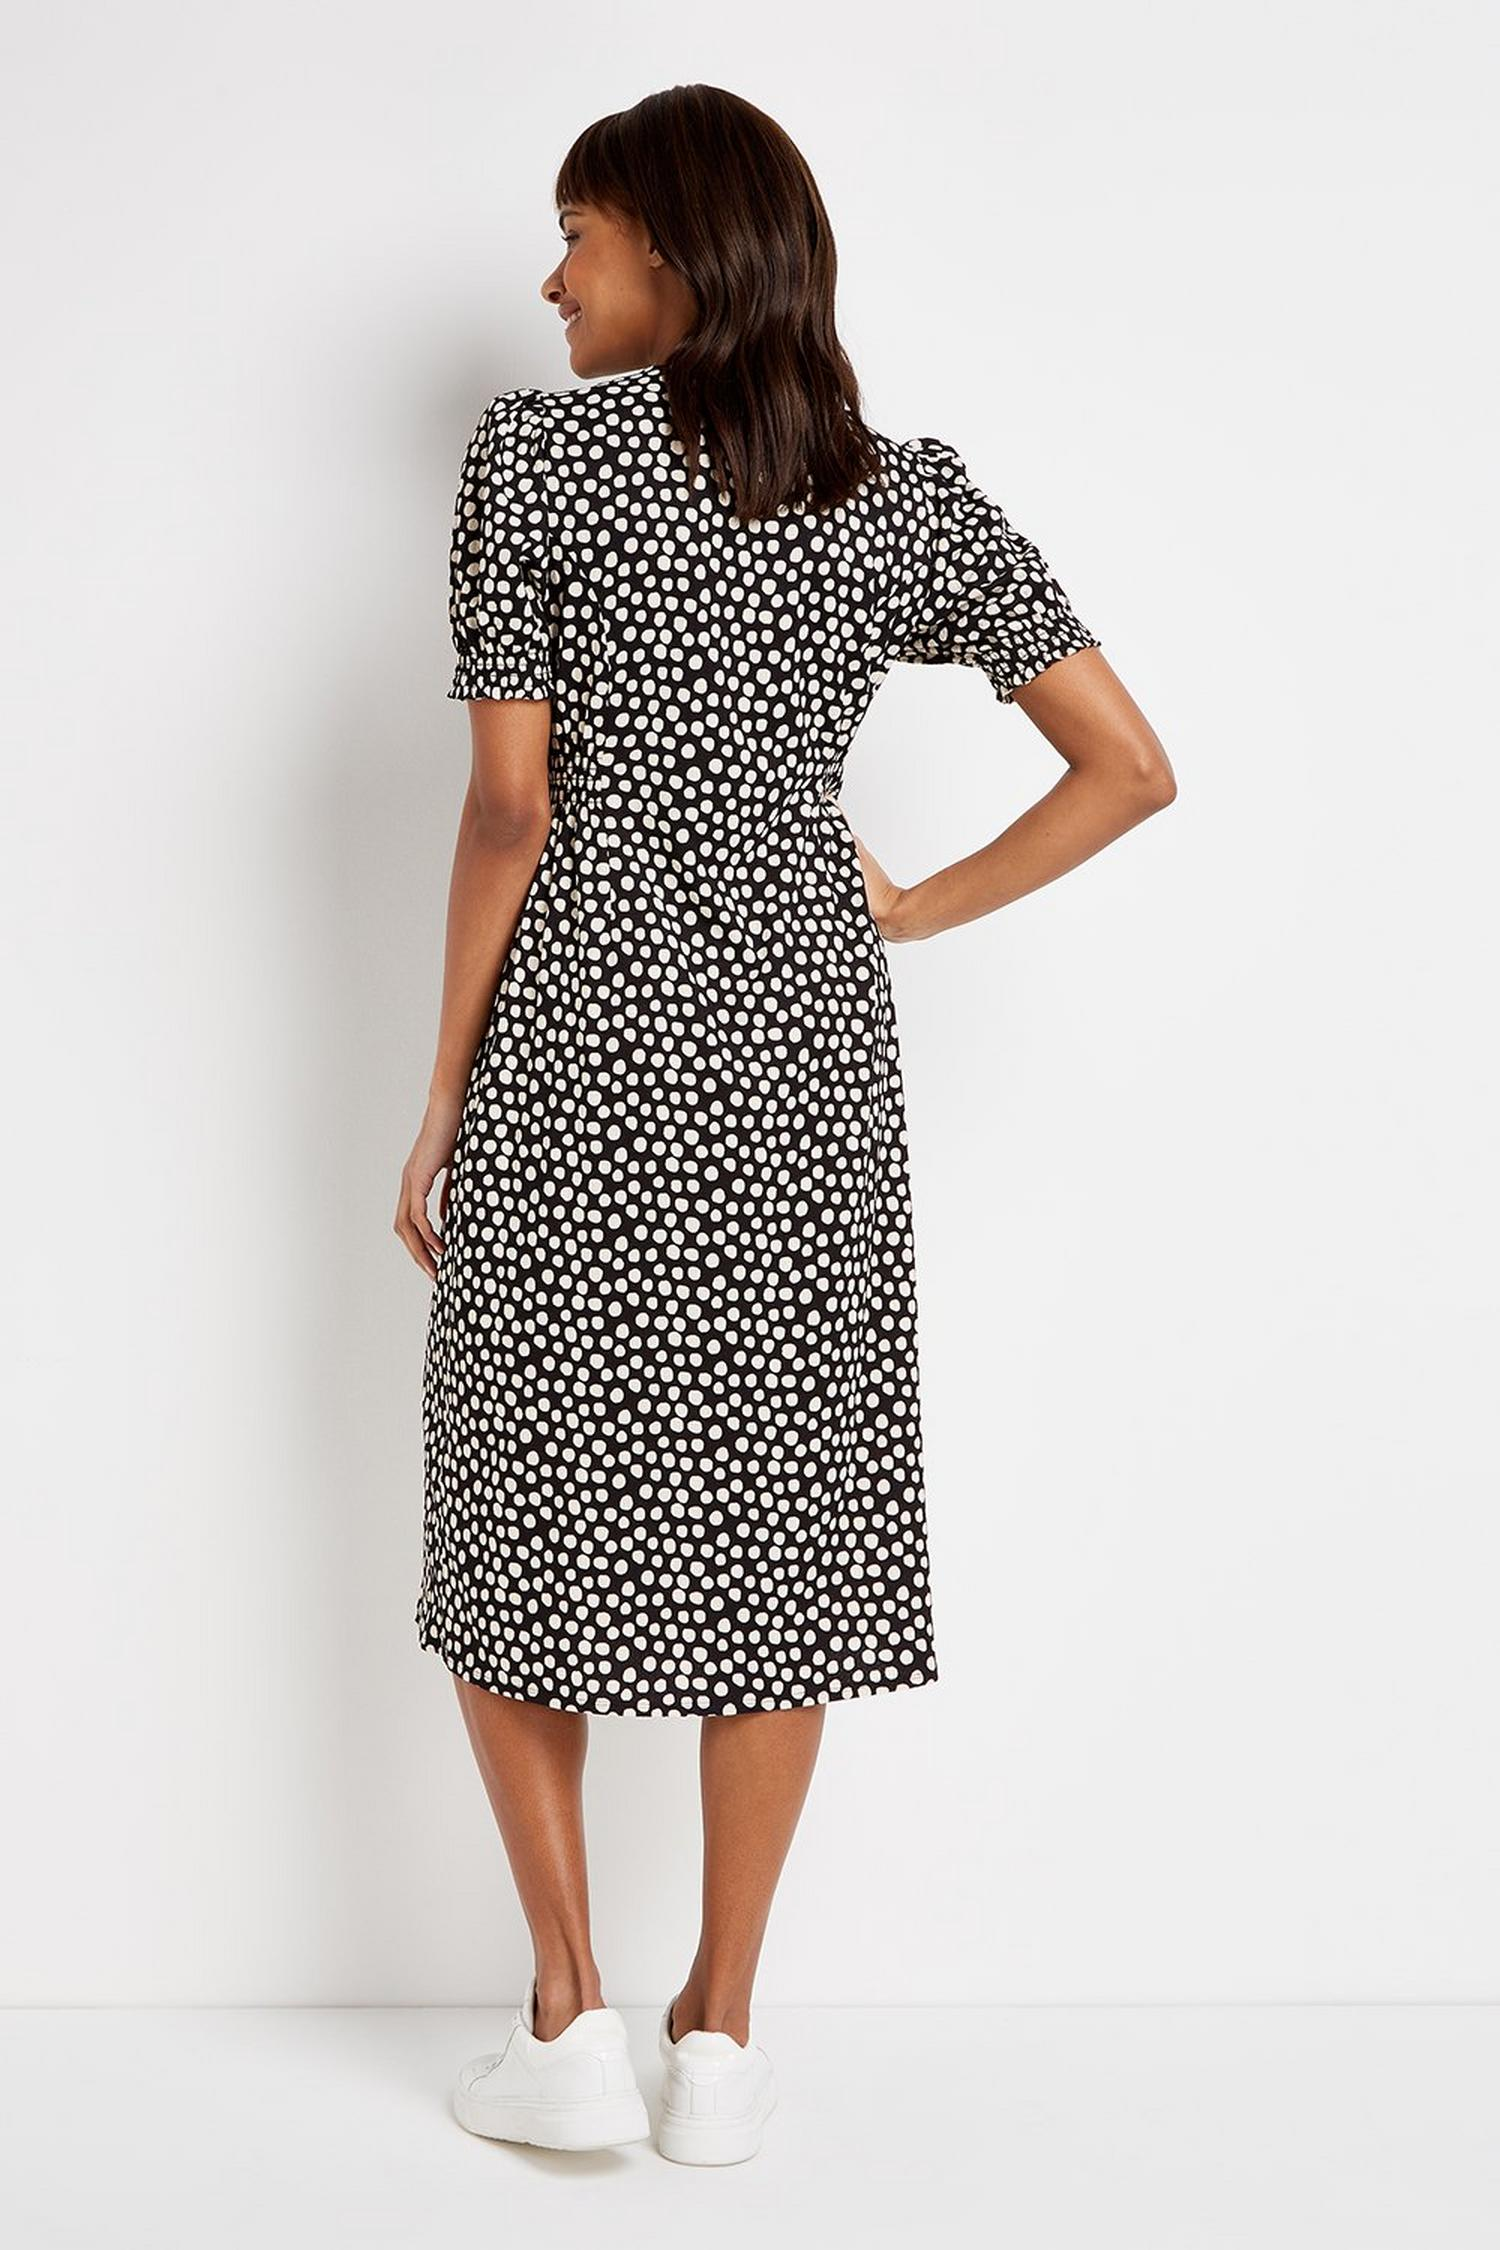 105 Black Polka Dot Midi Dress image number 3